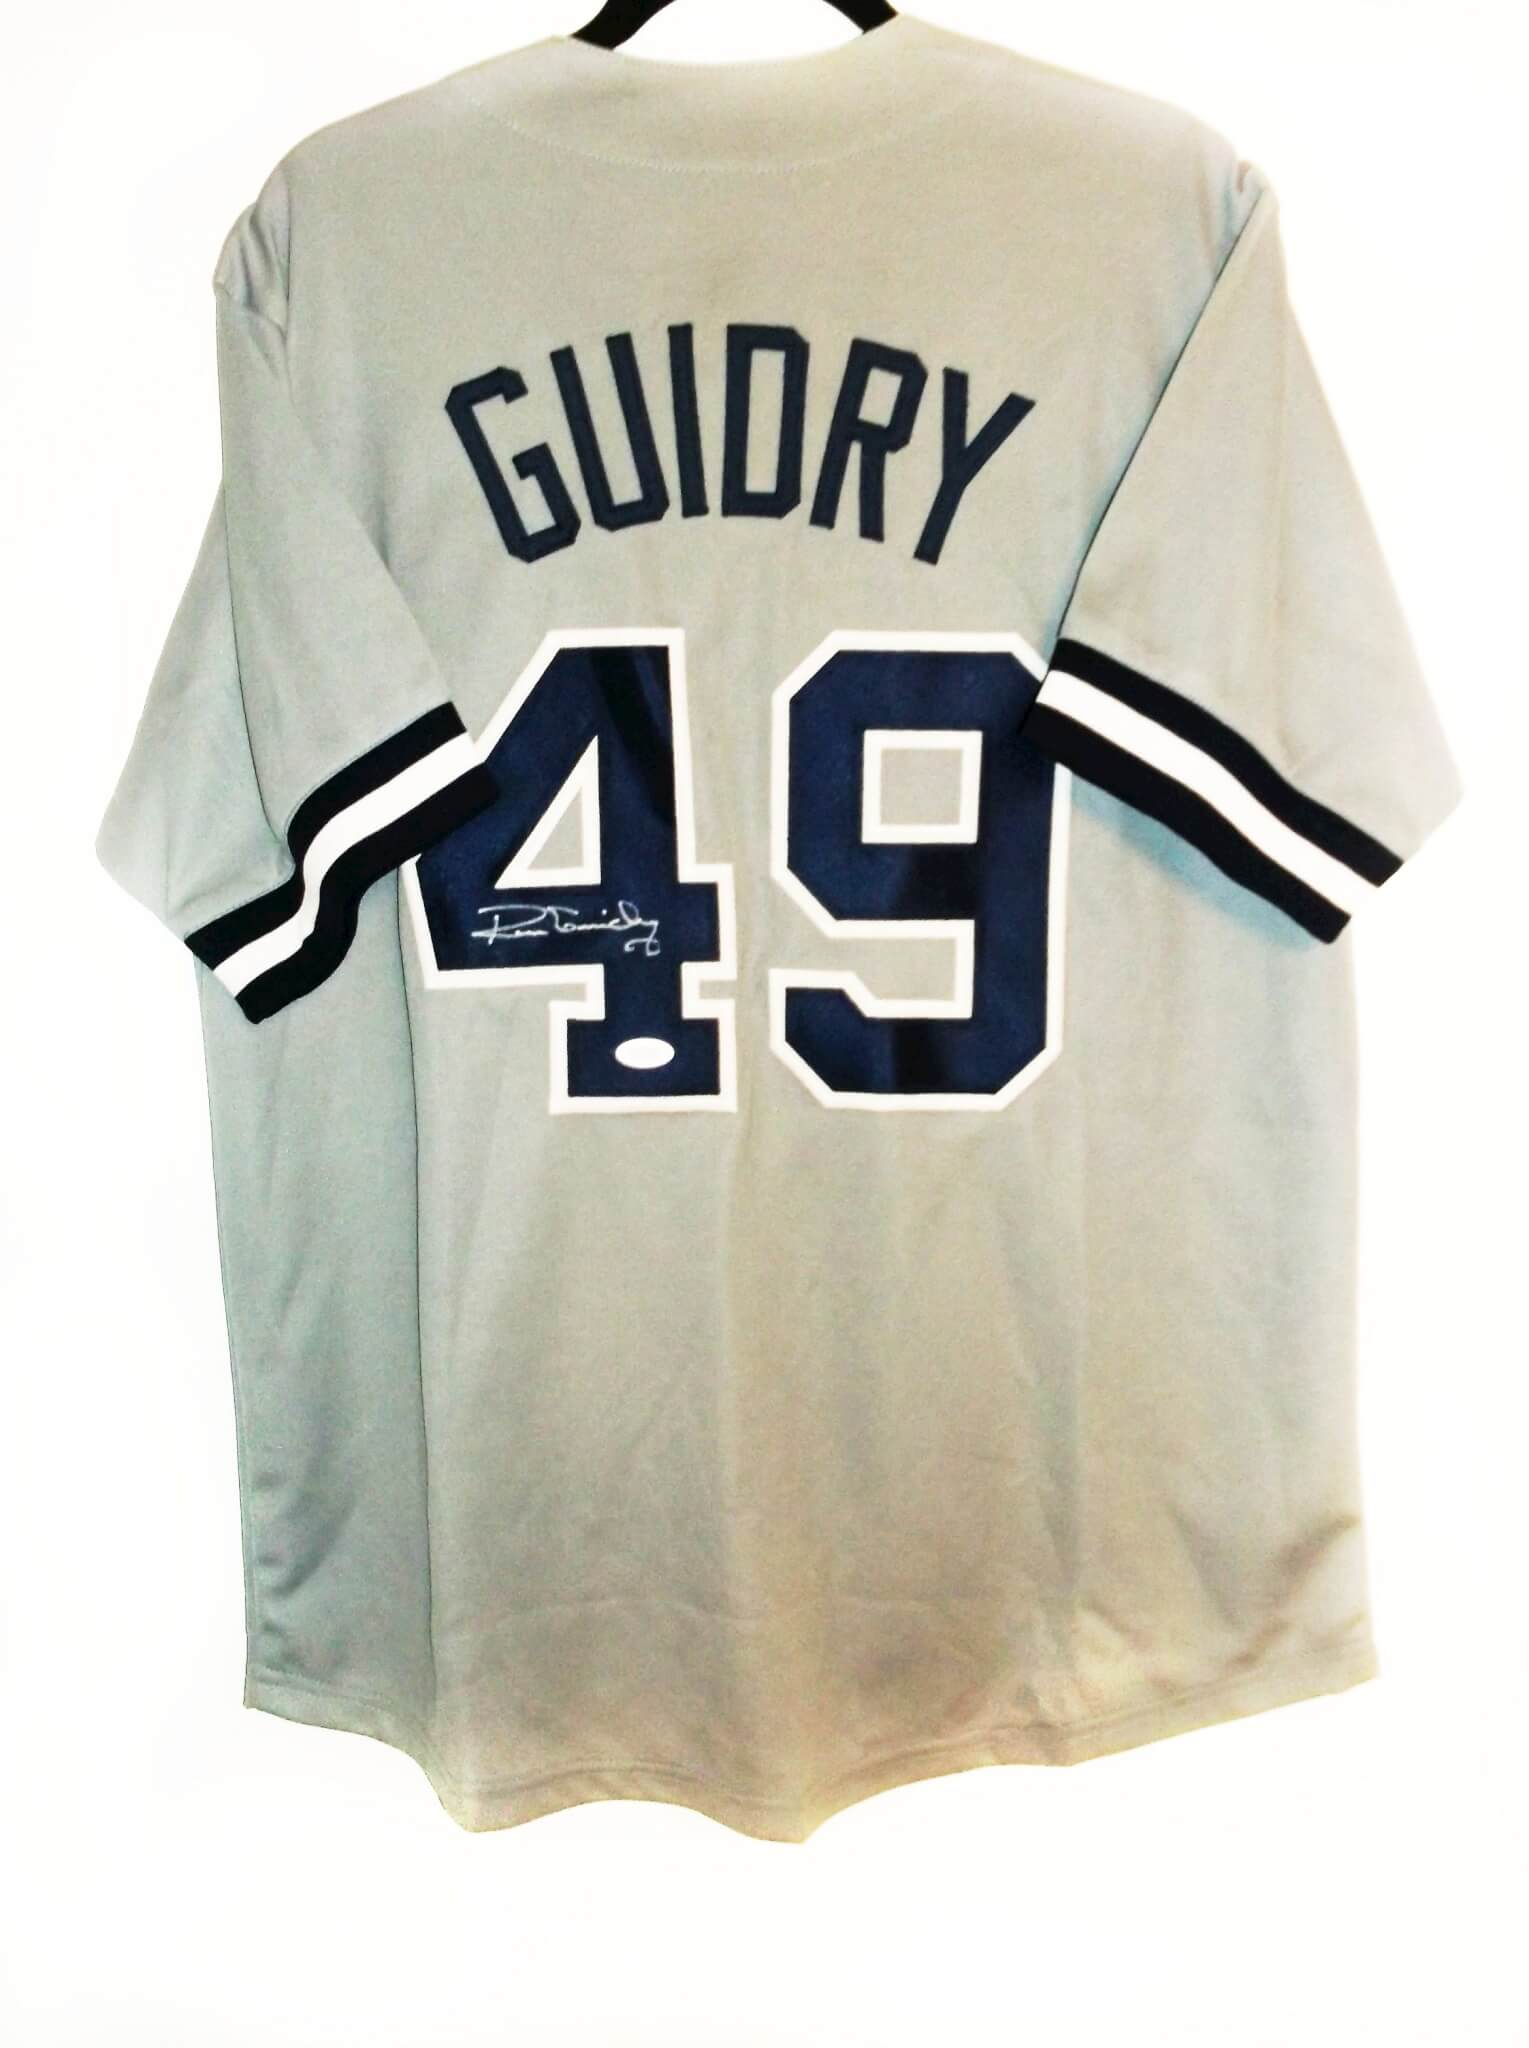 New York Yankees Ron Guidry signed Jersey - Memorabilia Expert 16ed5ea7382